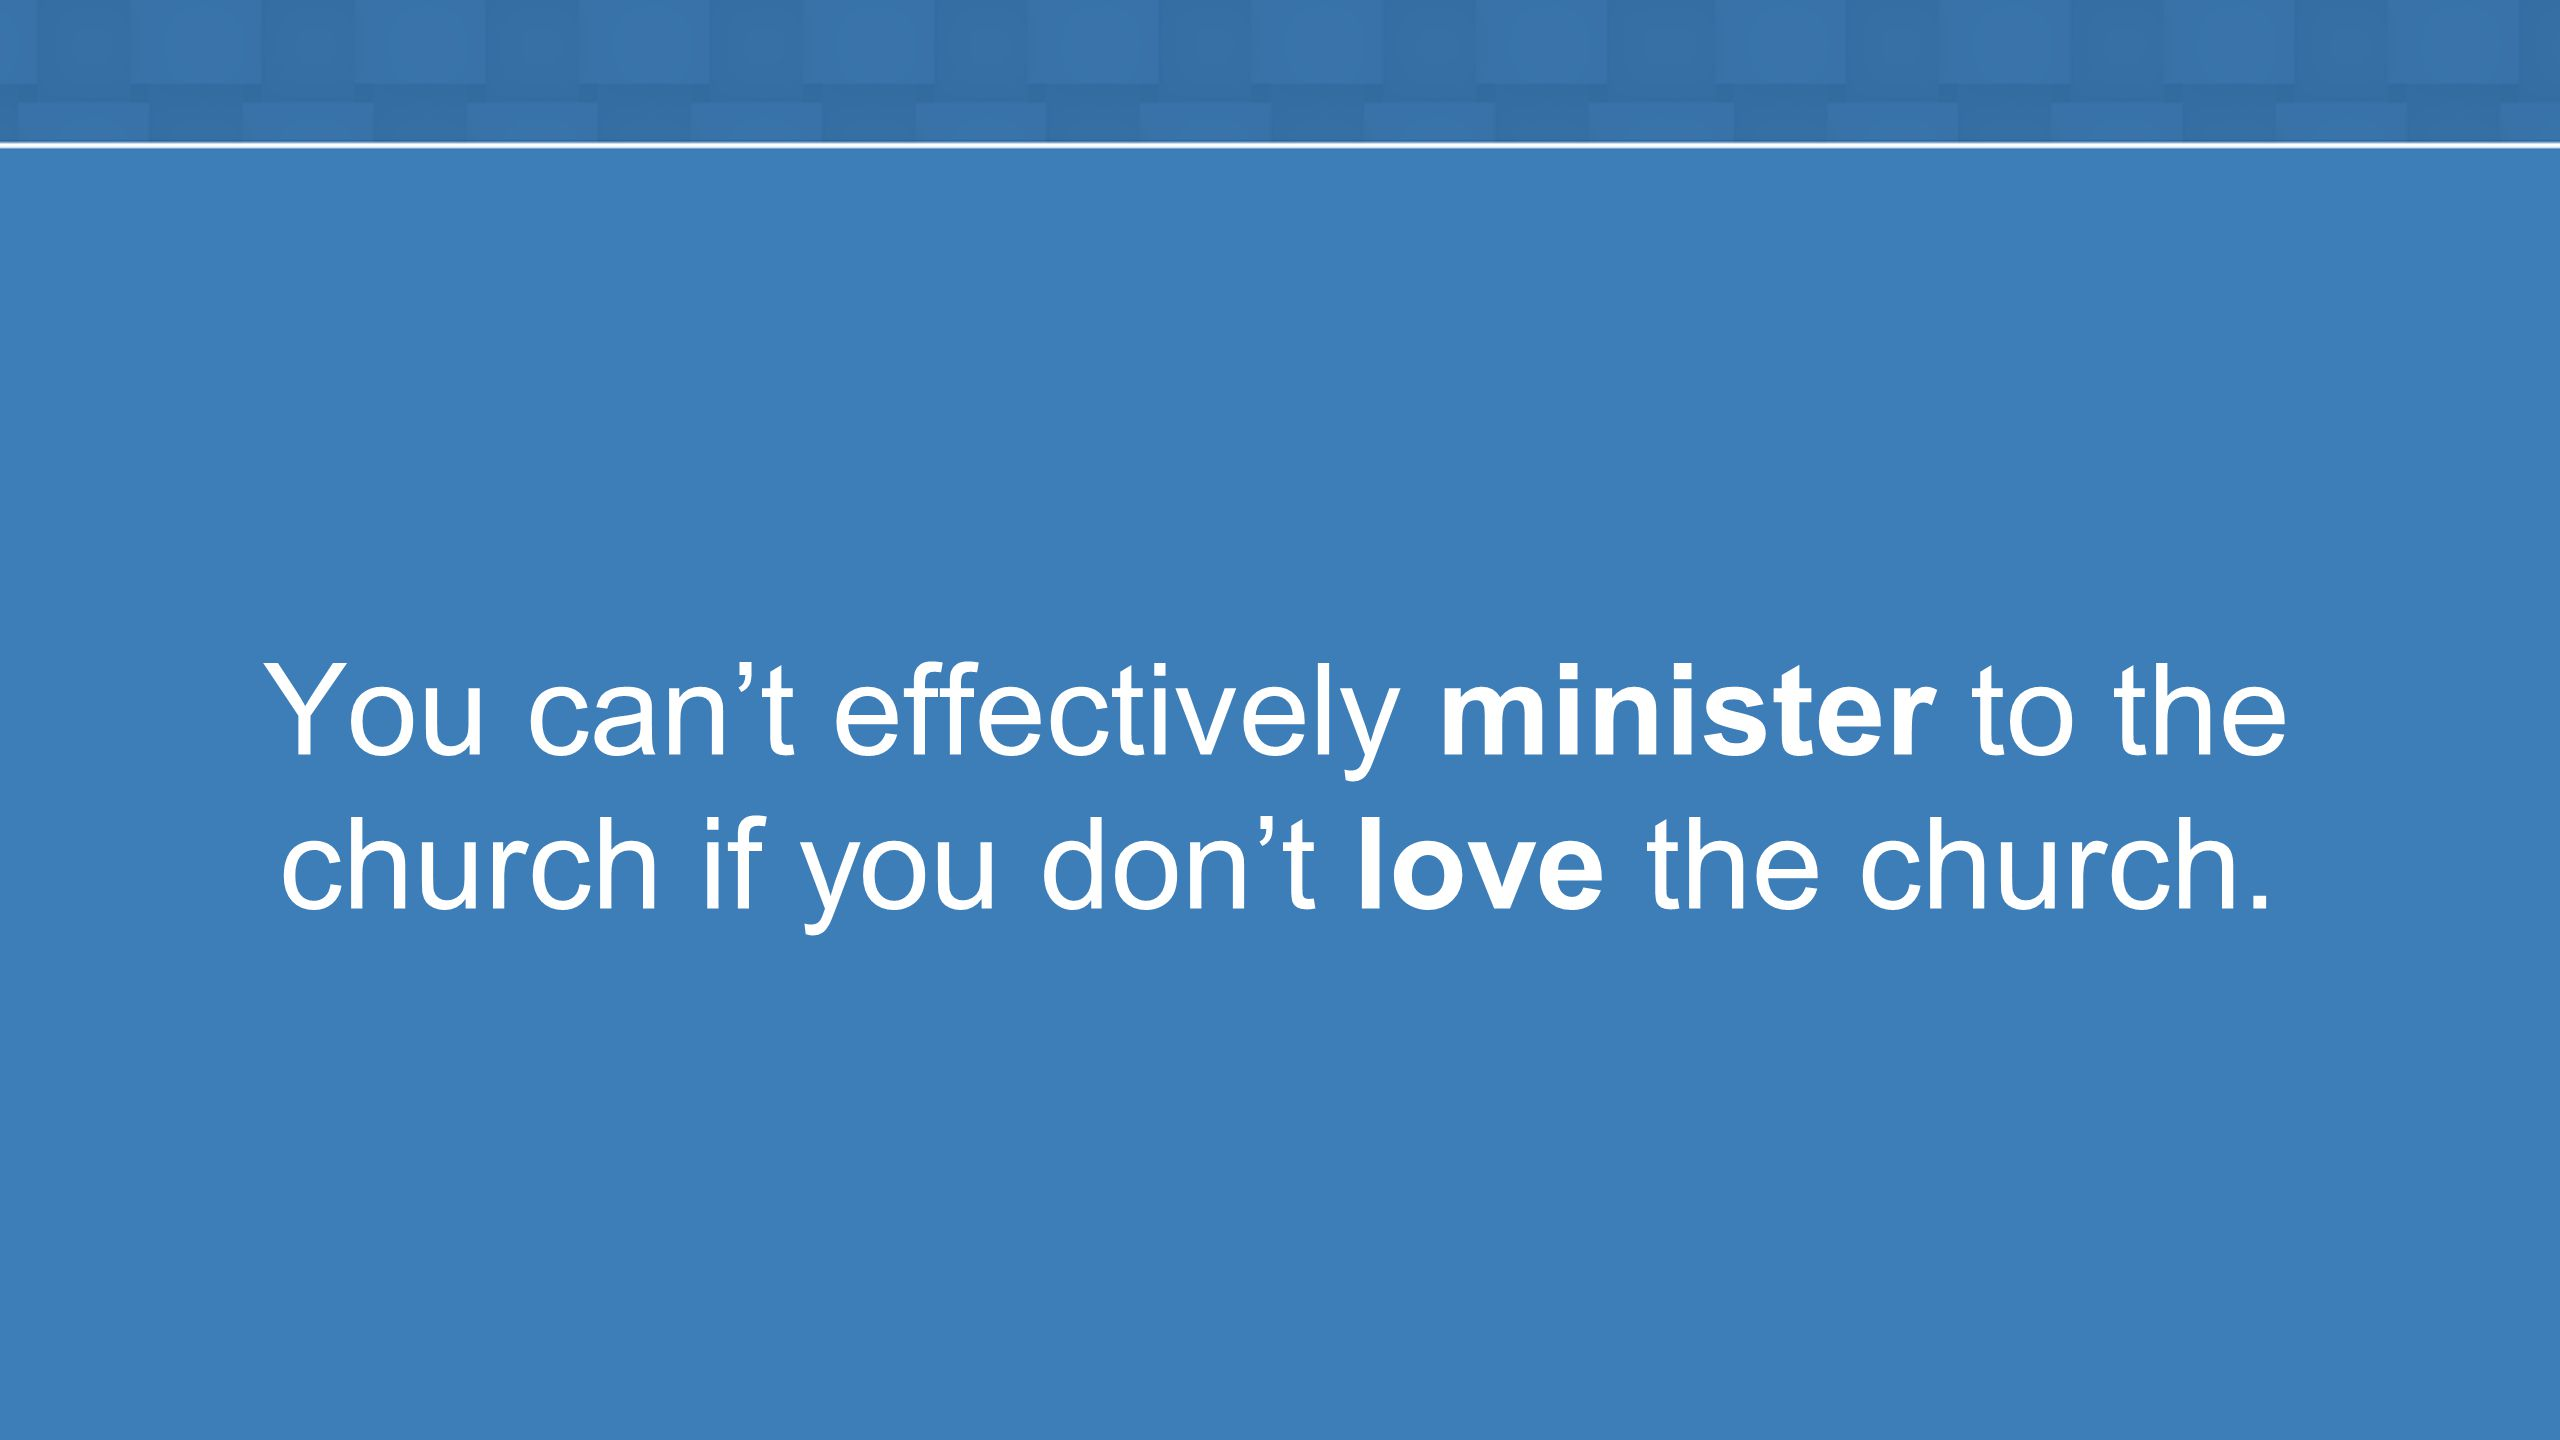 You can't effectively minister to the church if you don't love the church.